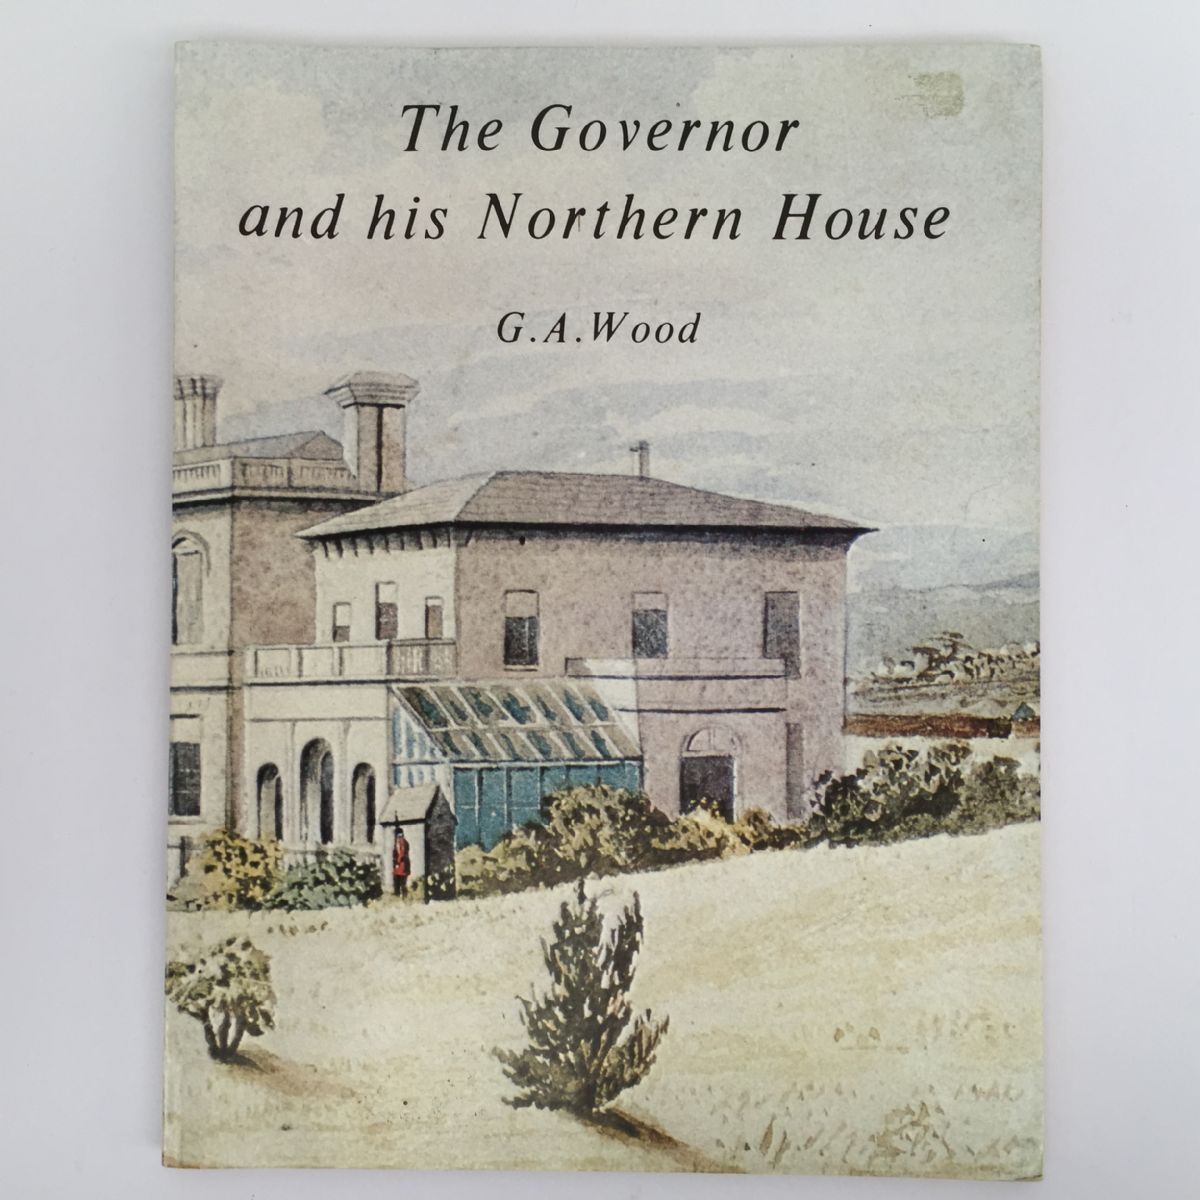 The Governor and His Northern House